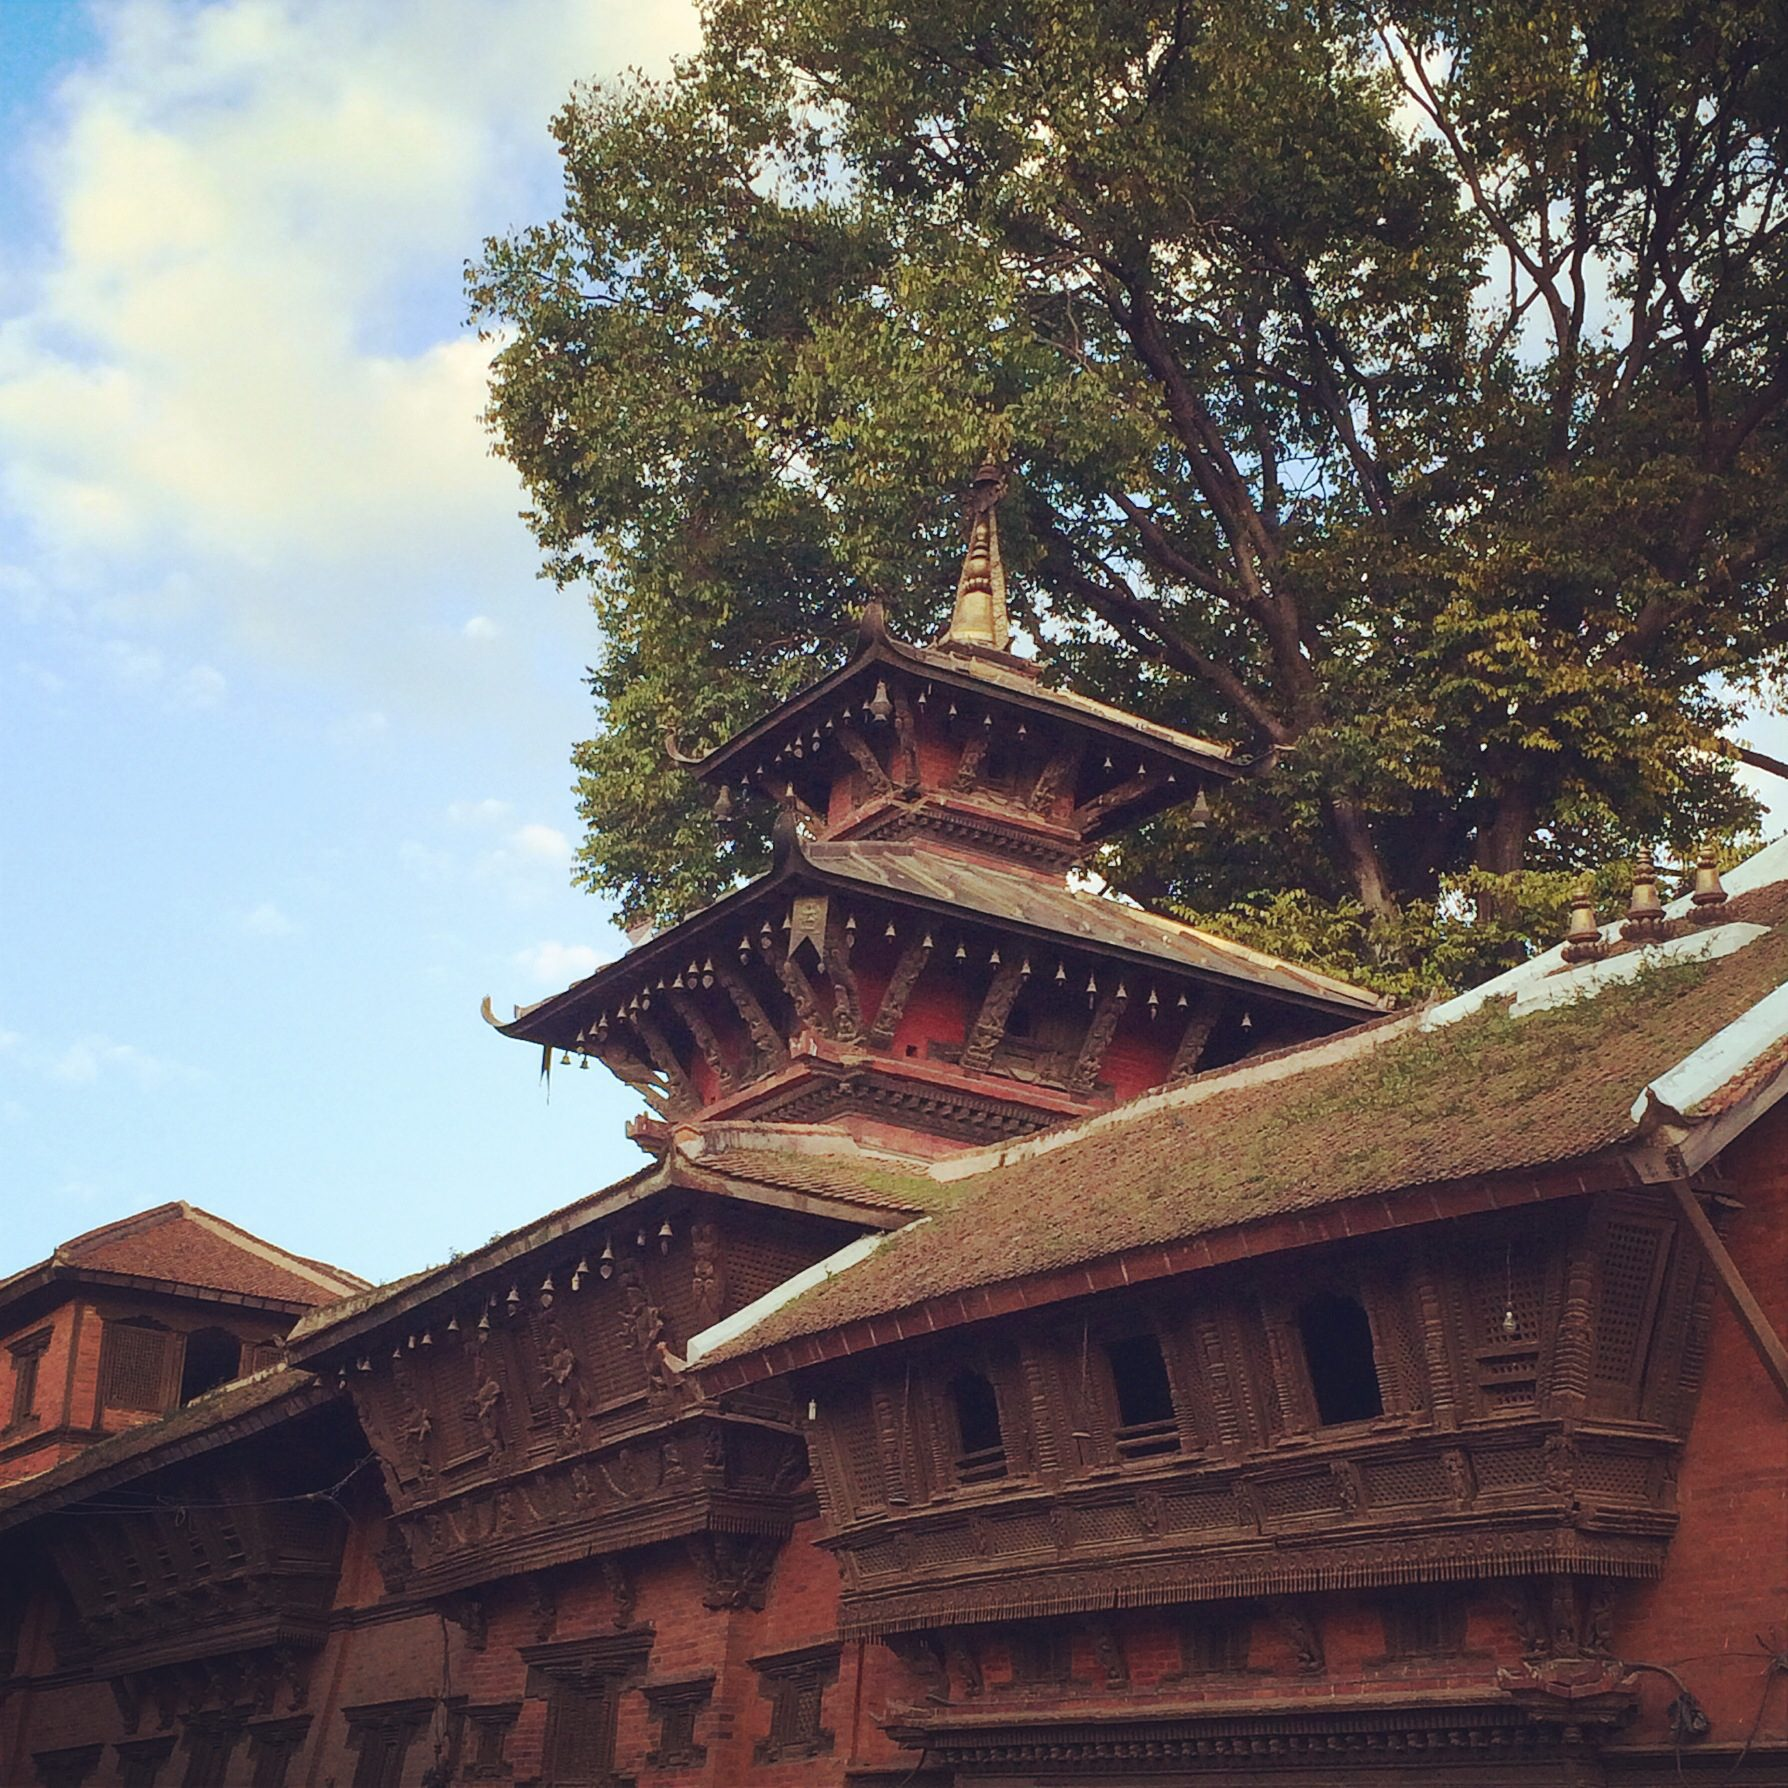 ancient wood and brick temple with a large tree above in Kathmandu